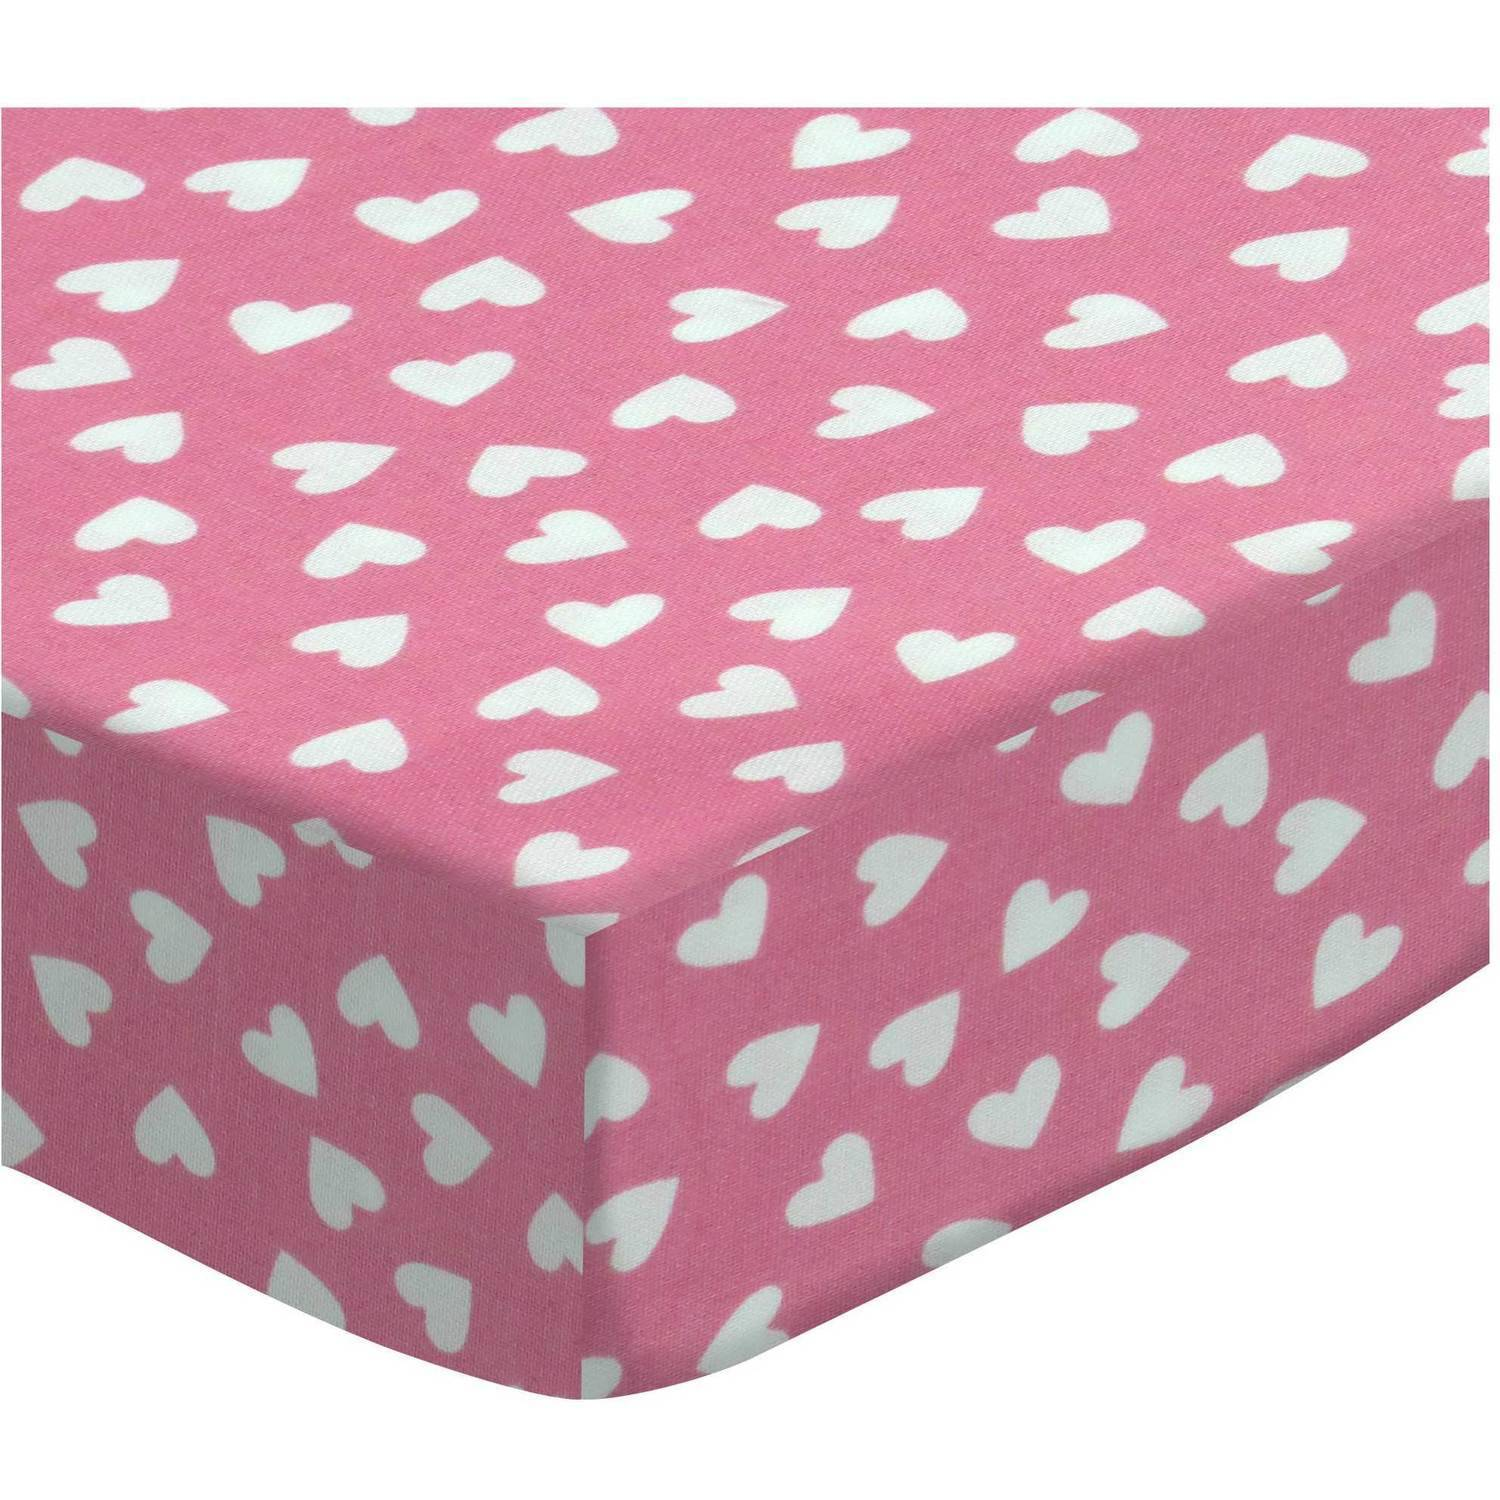 SheetWorld Fitted Sheet (Fits BabyBjorn Travel Crib Light) - Primary Hearts White On Pink Woven